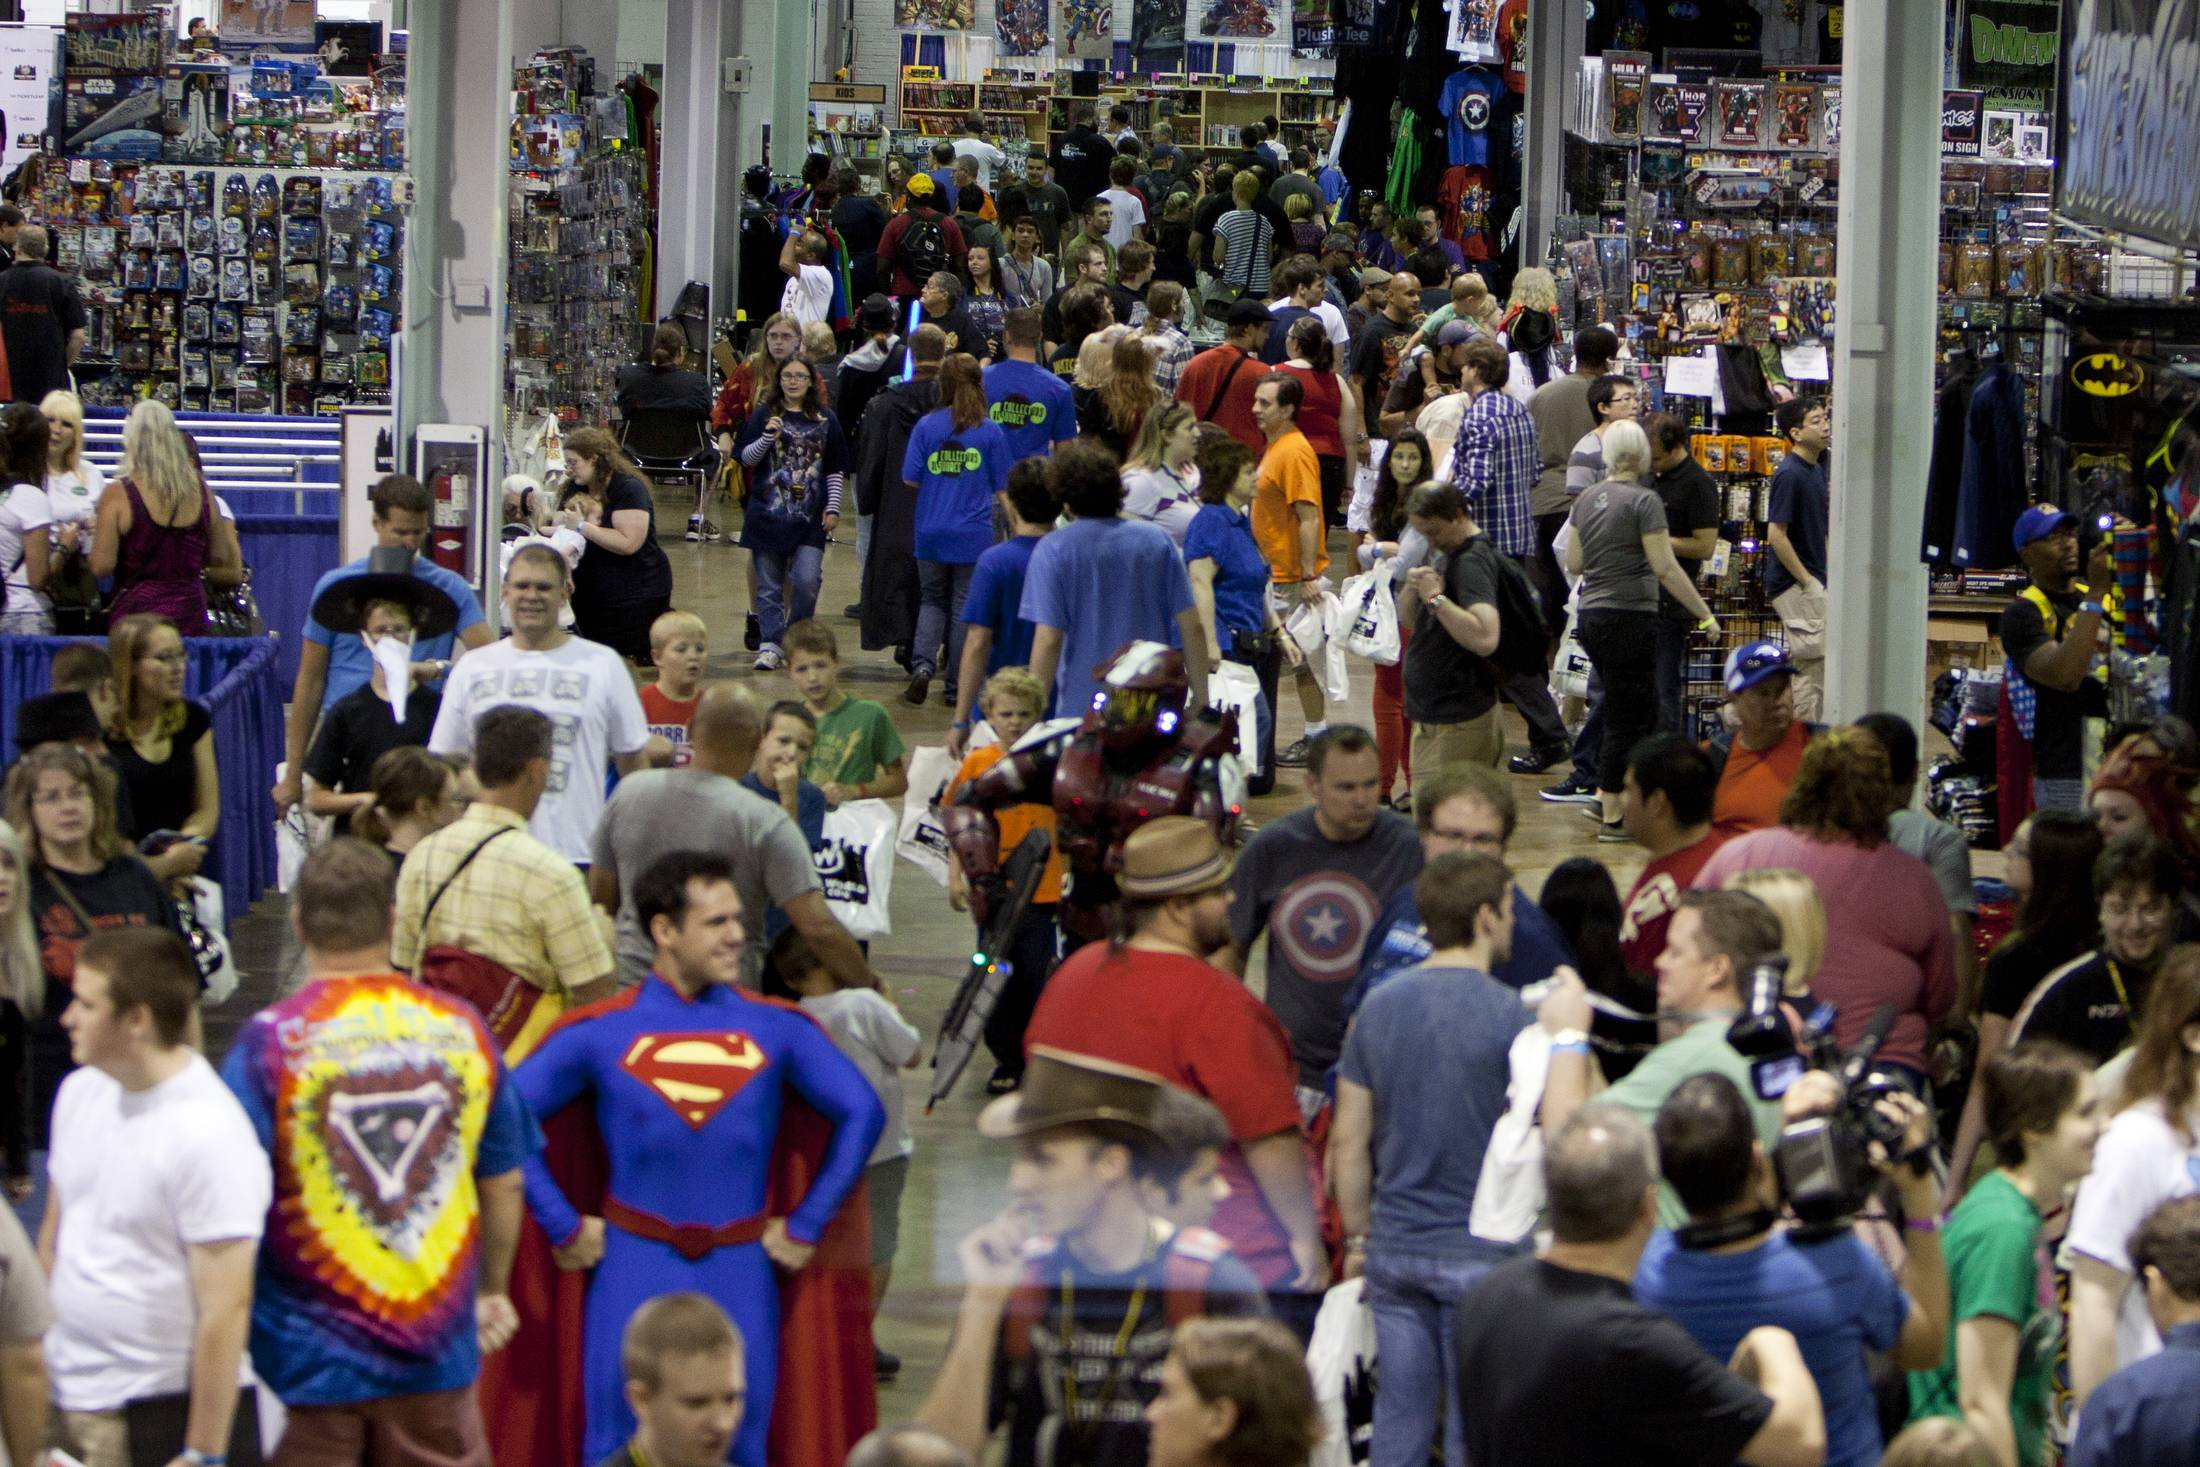 Thousands of fans and a cadre of celebrities and artists will gather next month at the Donald E. Stephens Convention Center in Rosemont for the annual Wizard World Chicago convention.